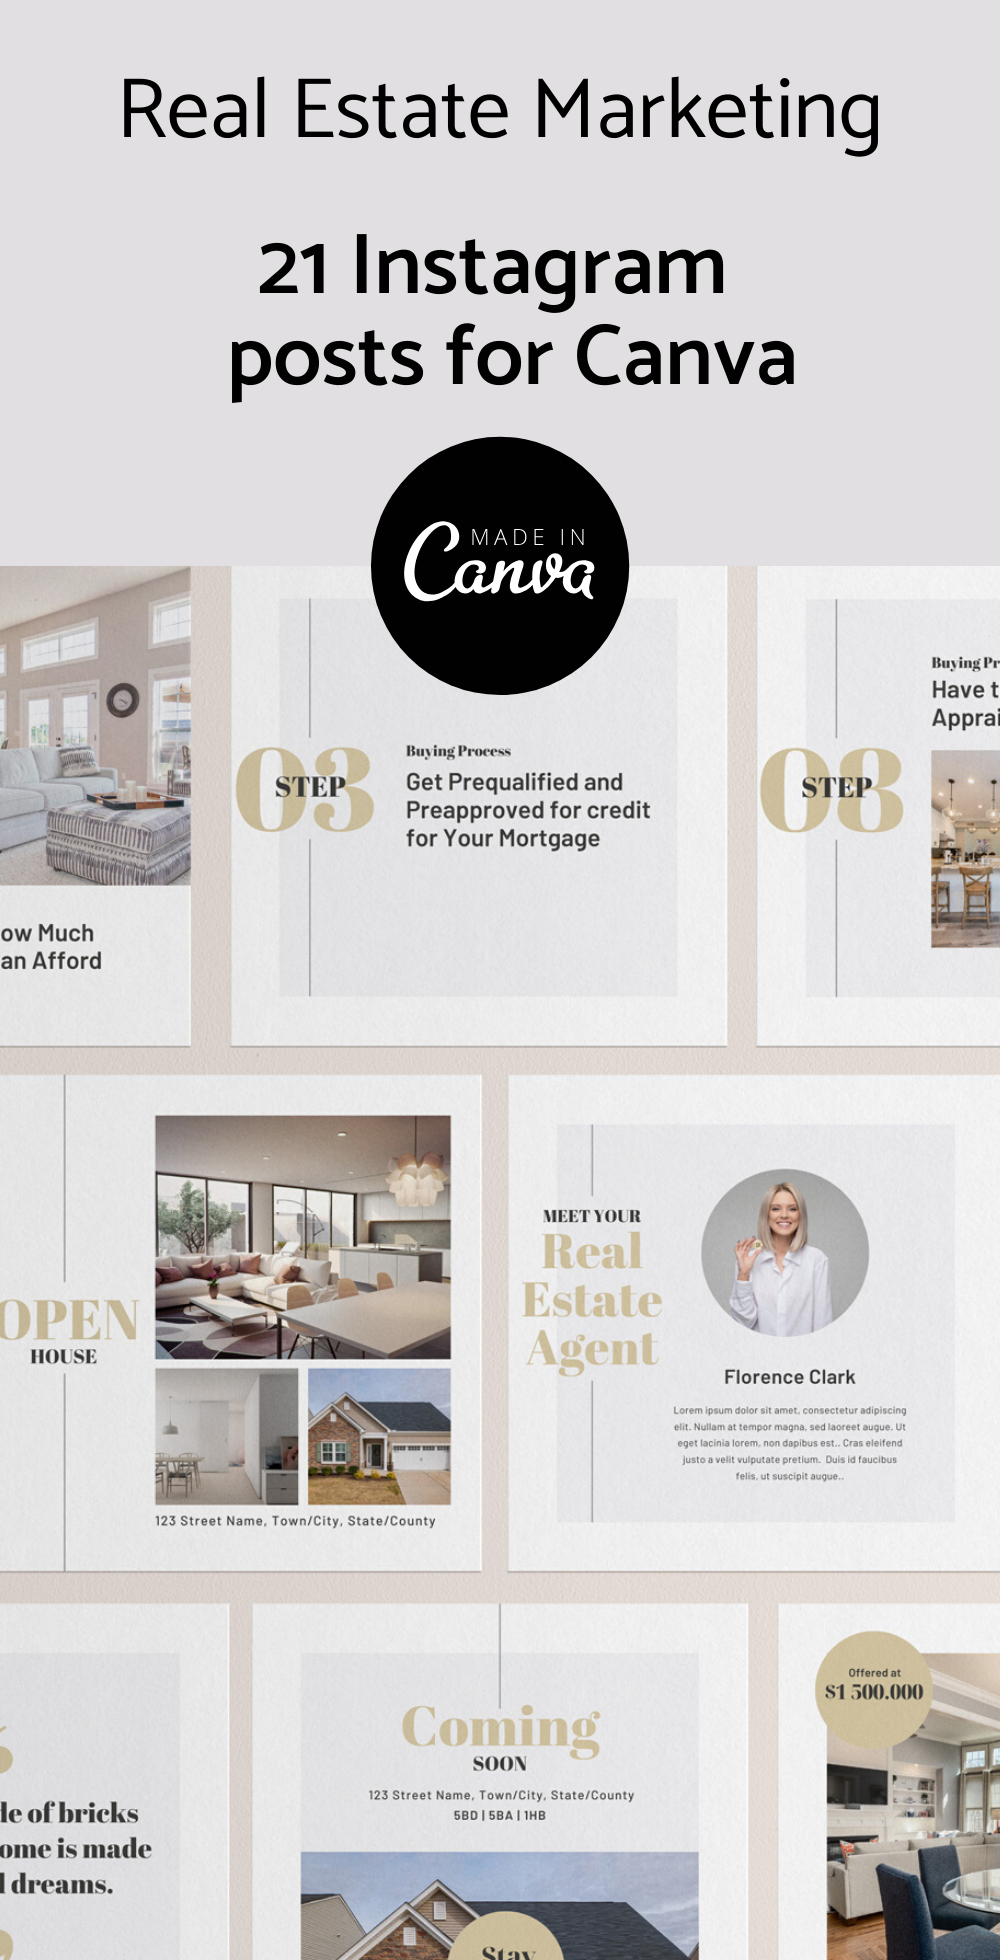 Real Estate Instagram posts, Canva Social Media, Real Estate Marketing, Canva Instagram Post, Canva